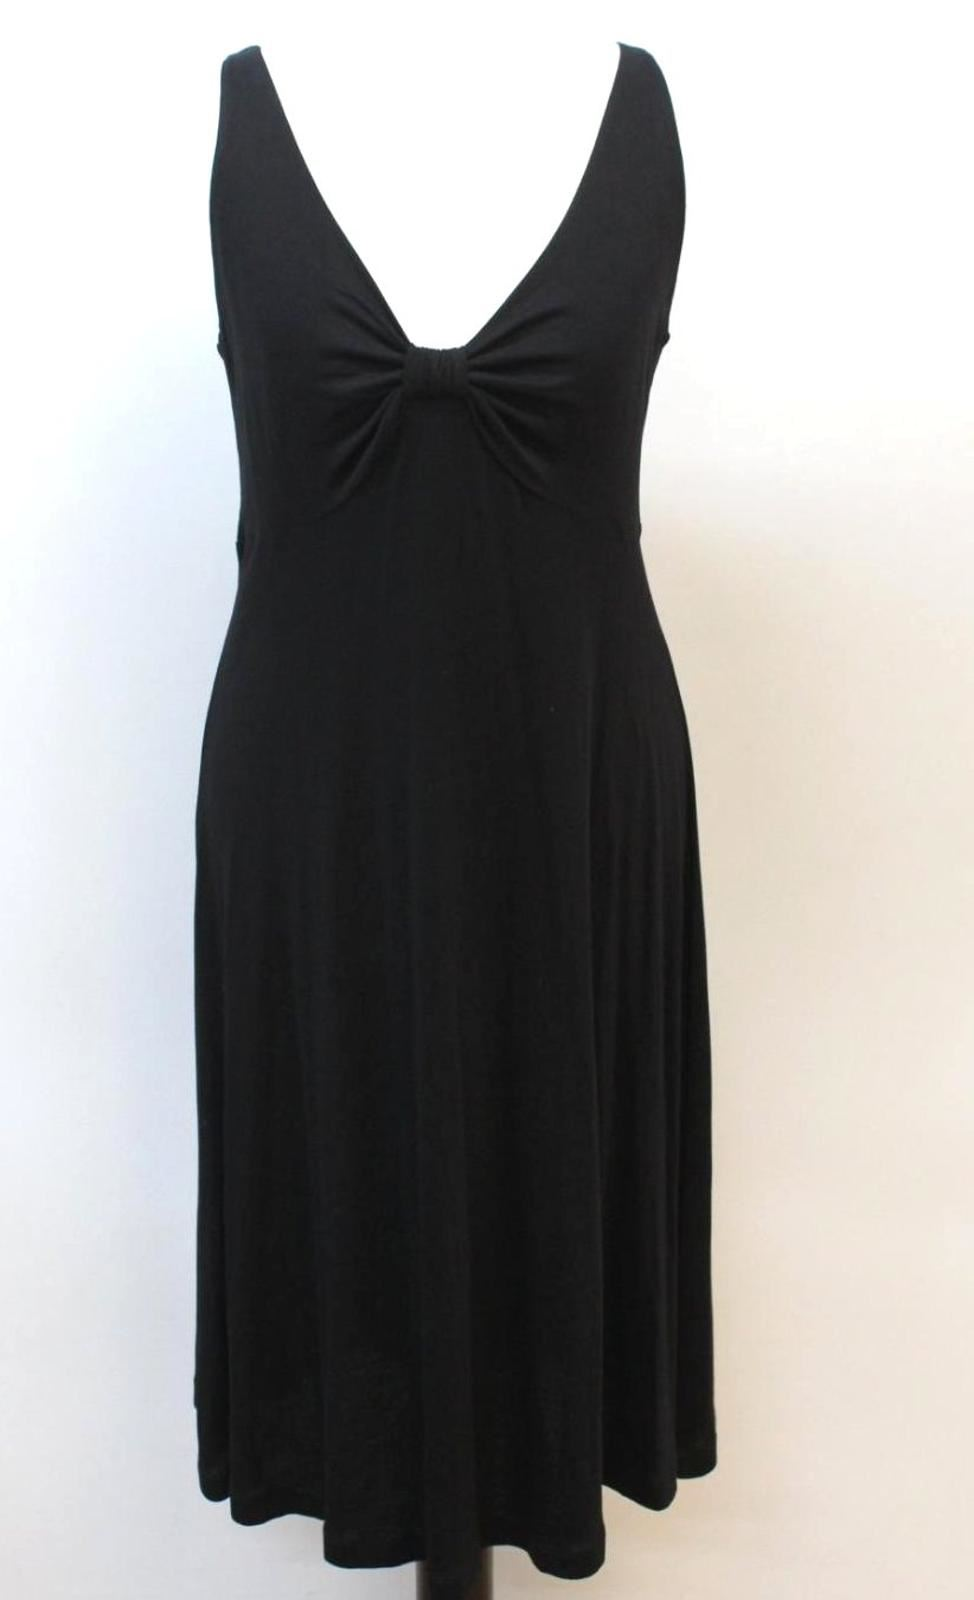 THE-WHITE-COMPANY-Ladies-Black-Sleeveless-V-Neck-Knot-Shift-Dress-Size-S